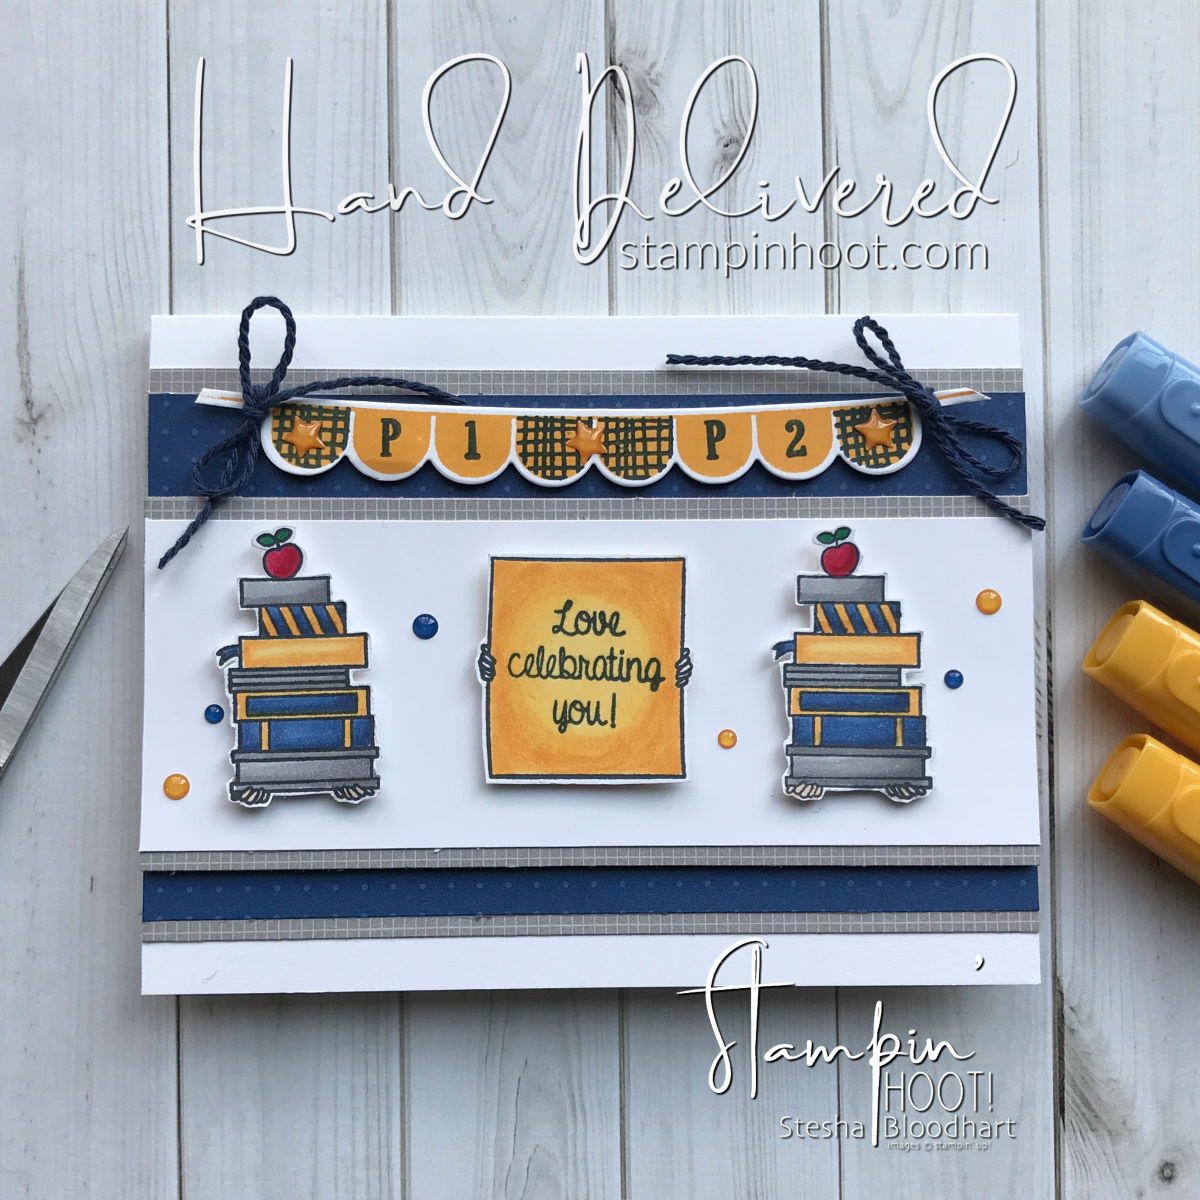 Hand Delivered and Pick a Pennant Stamp Sets by Stampin' Up! for a school days theme for #GDP155 Theme Challenge #steshabloodhart #stampinhoot